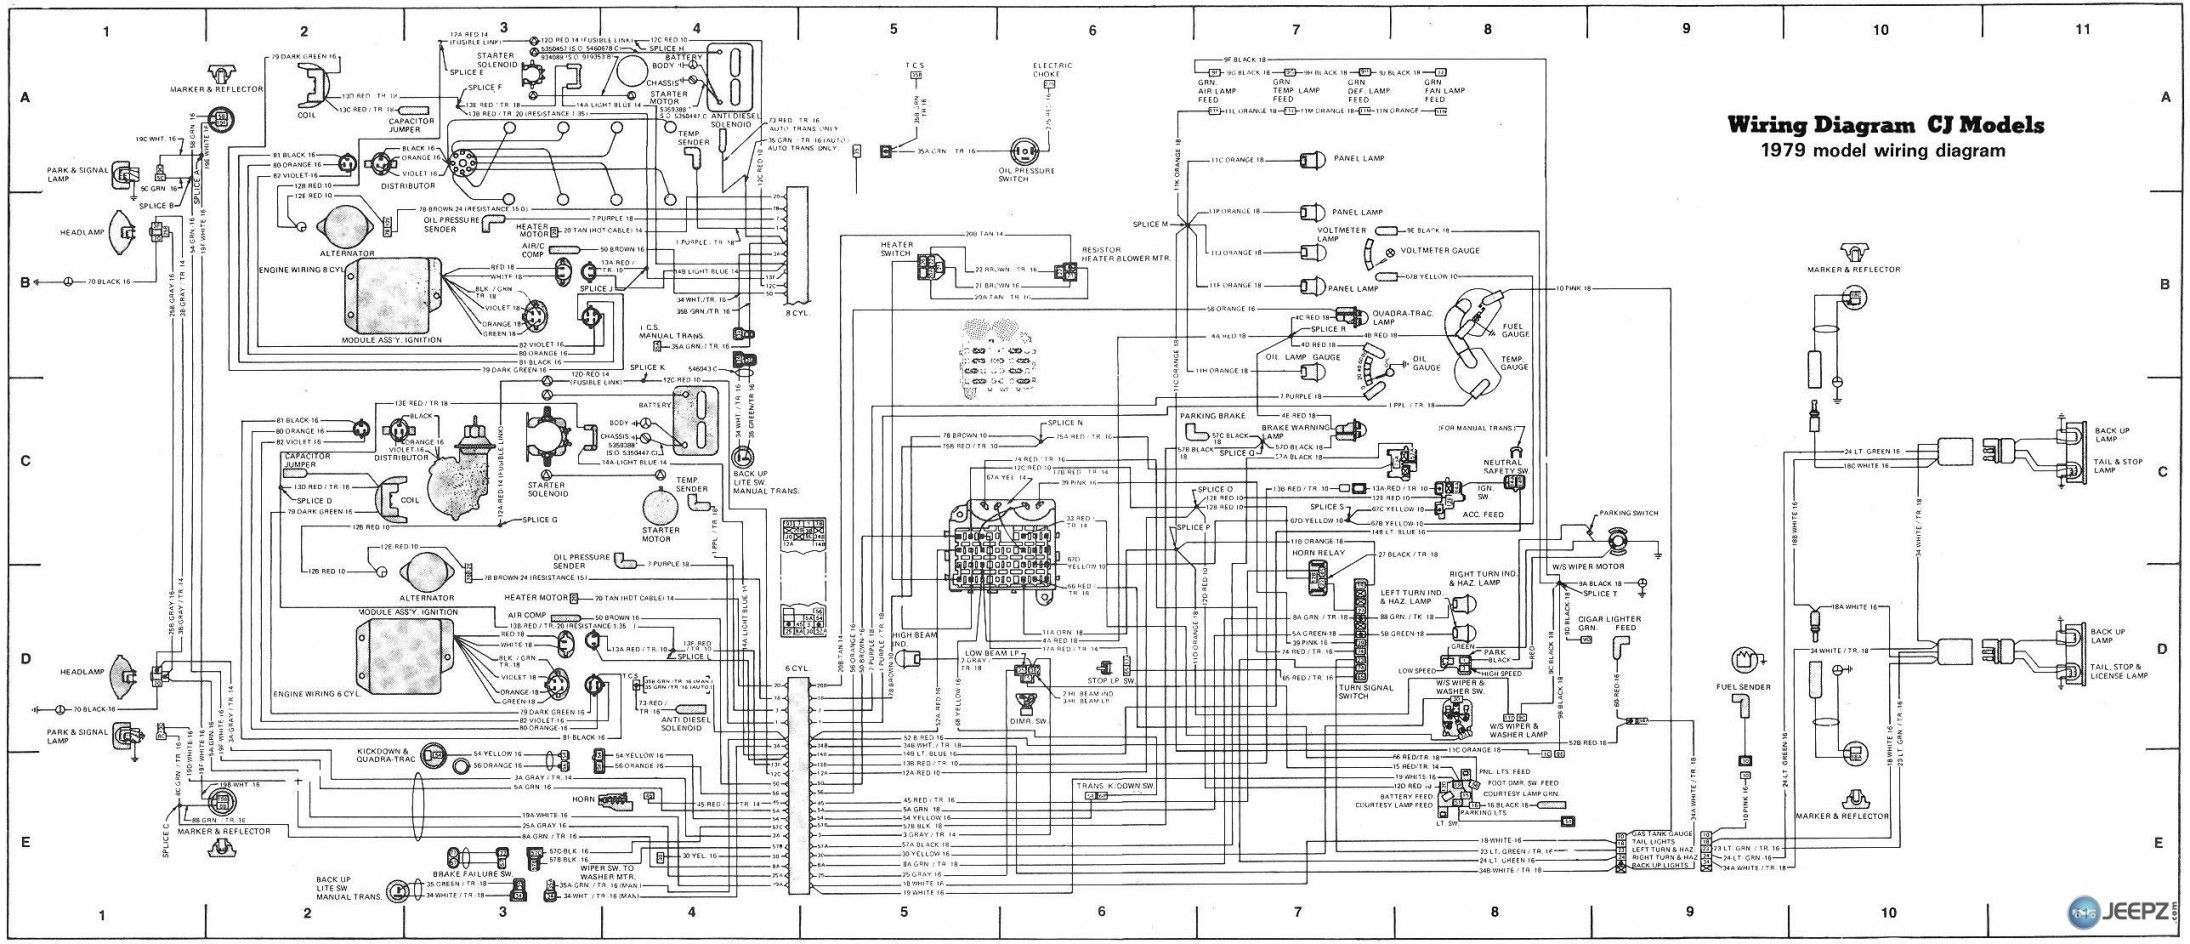 Best 1979 Jeep Cj7 Wiring Diagram | Jeep cj7, Cj7, Willys jeep